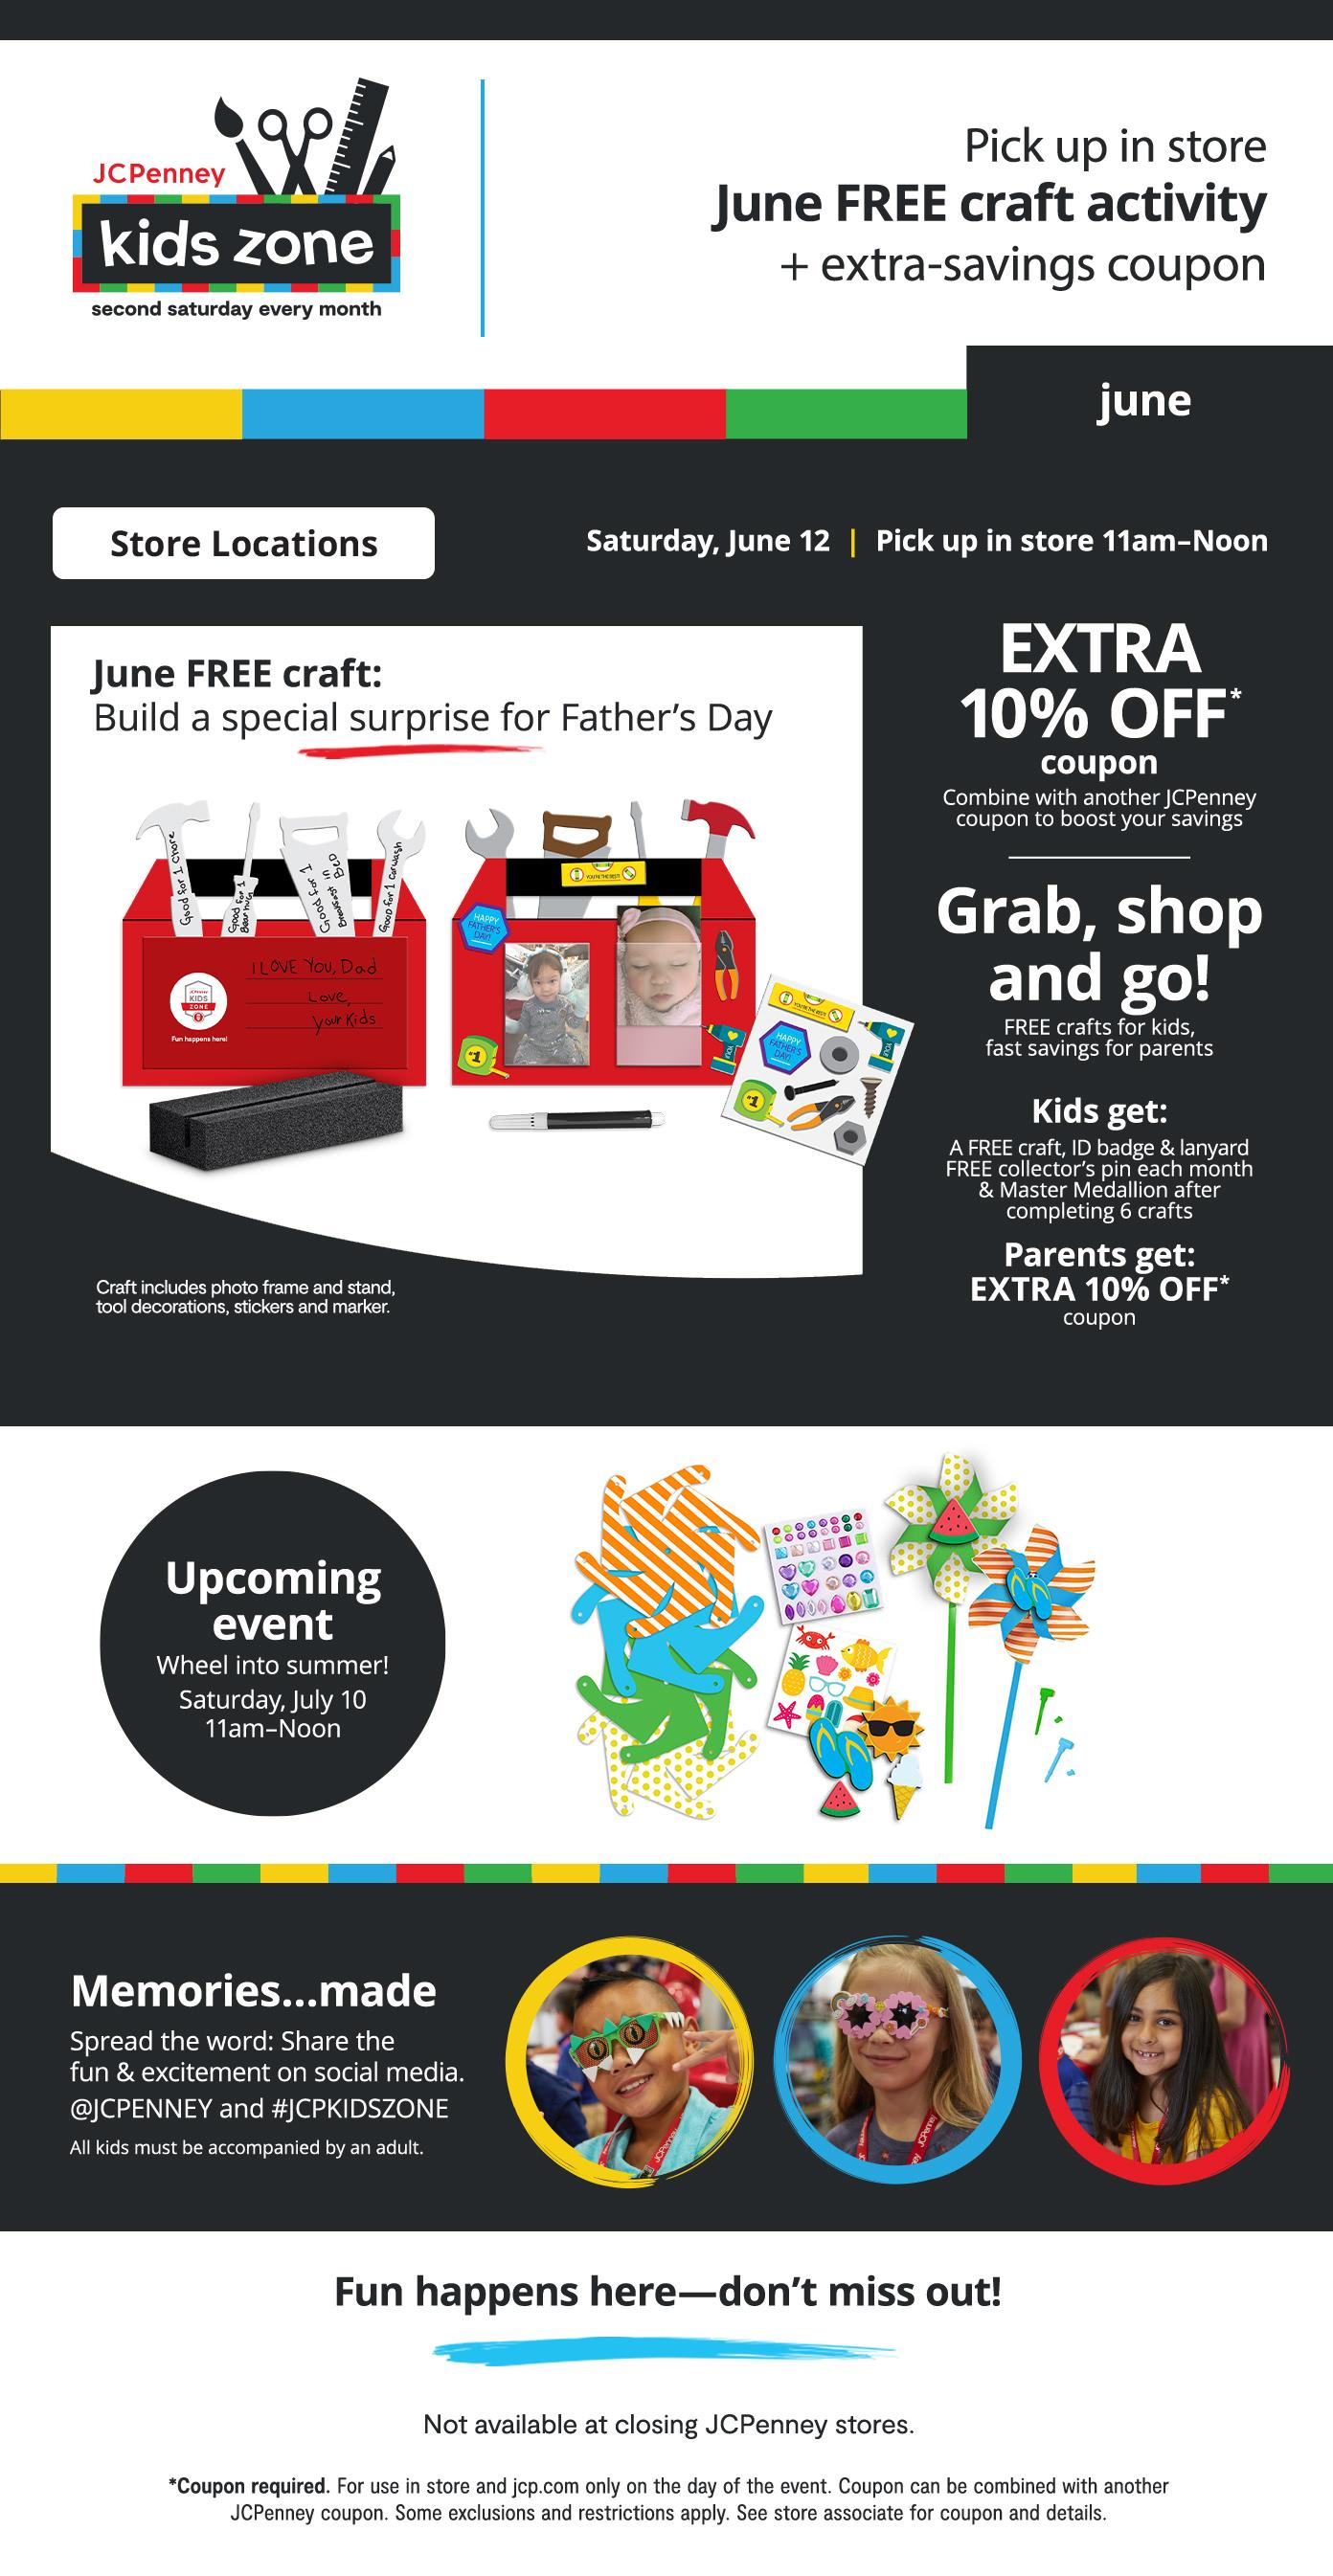 Kids Zone Second Saturday every month Pick up FREE craft & coupon  Saturday, June 12 | 11am–Noon  Pick up in store June FREE craft activity + extra-savings coupon